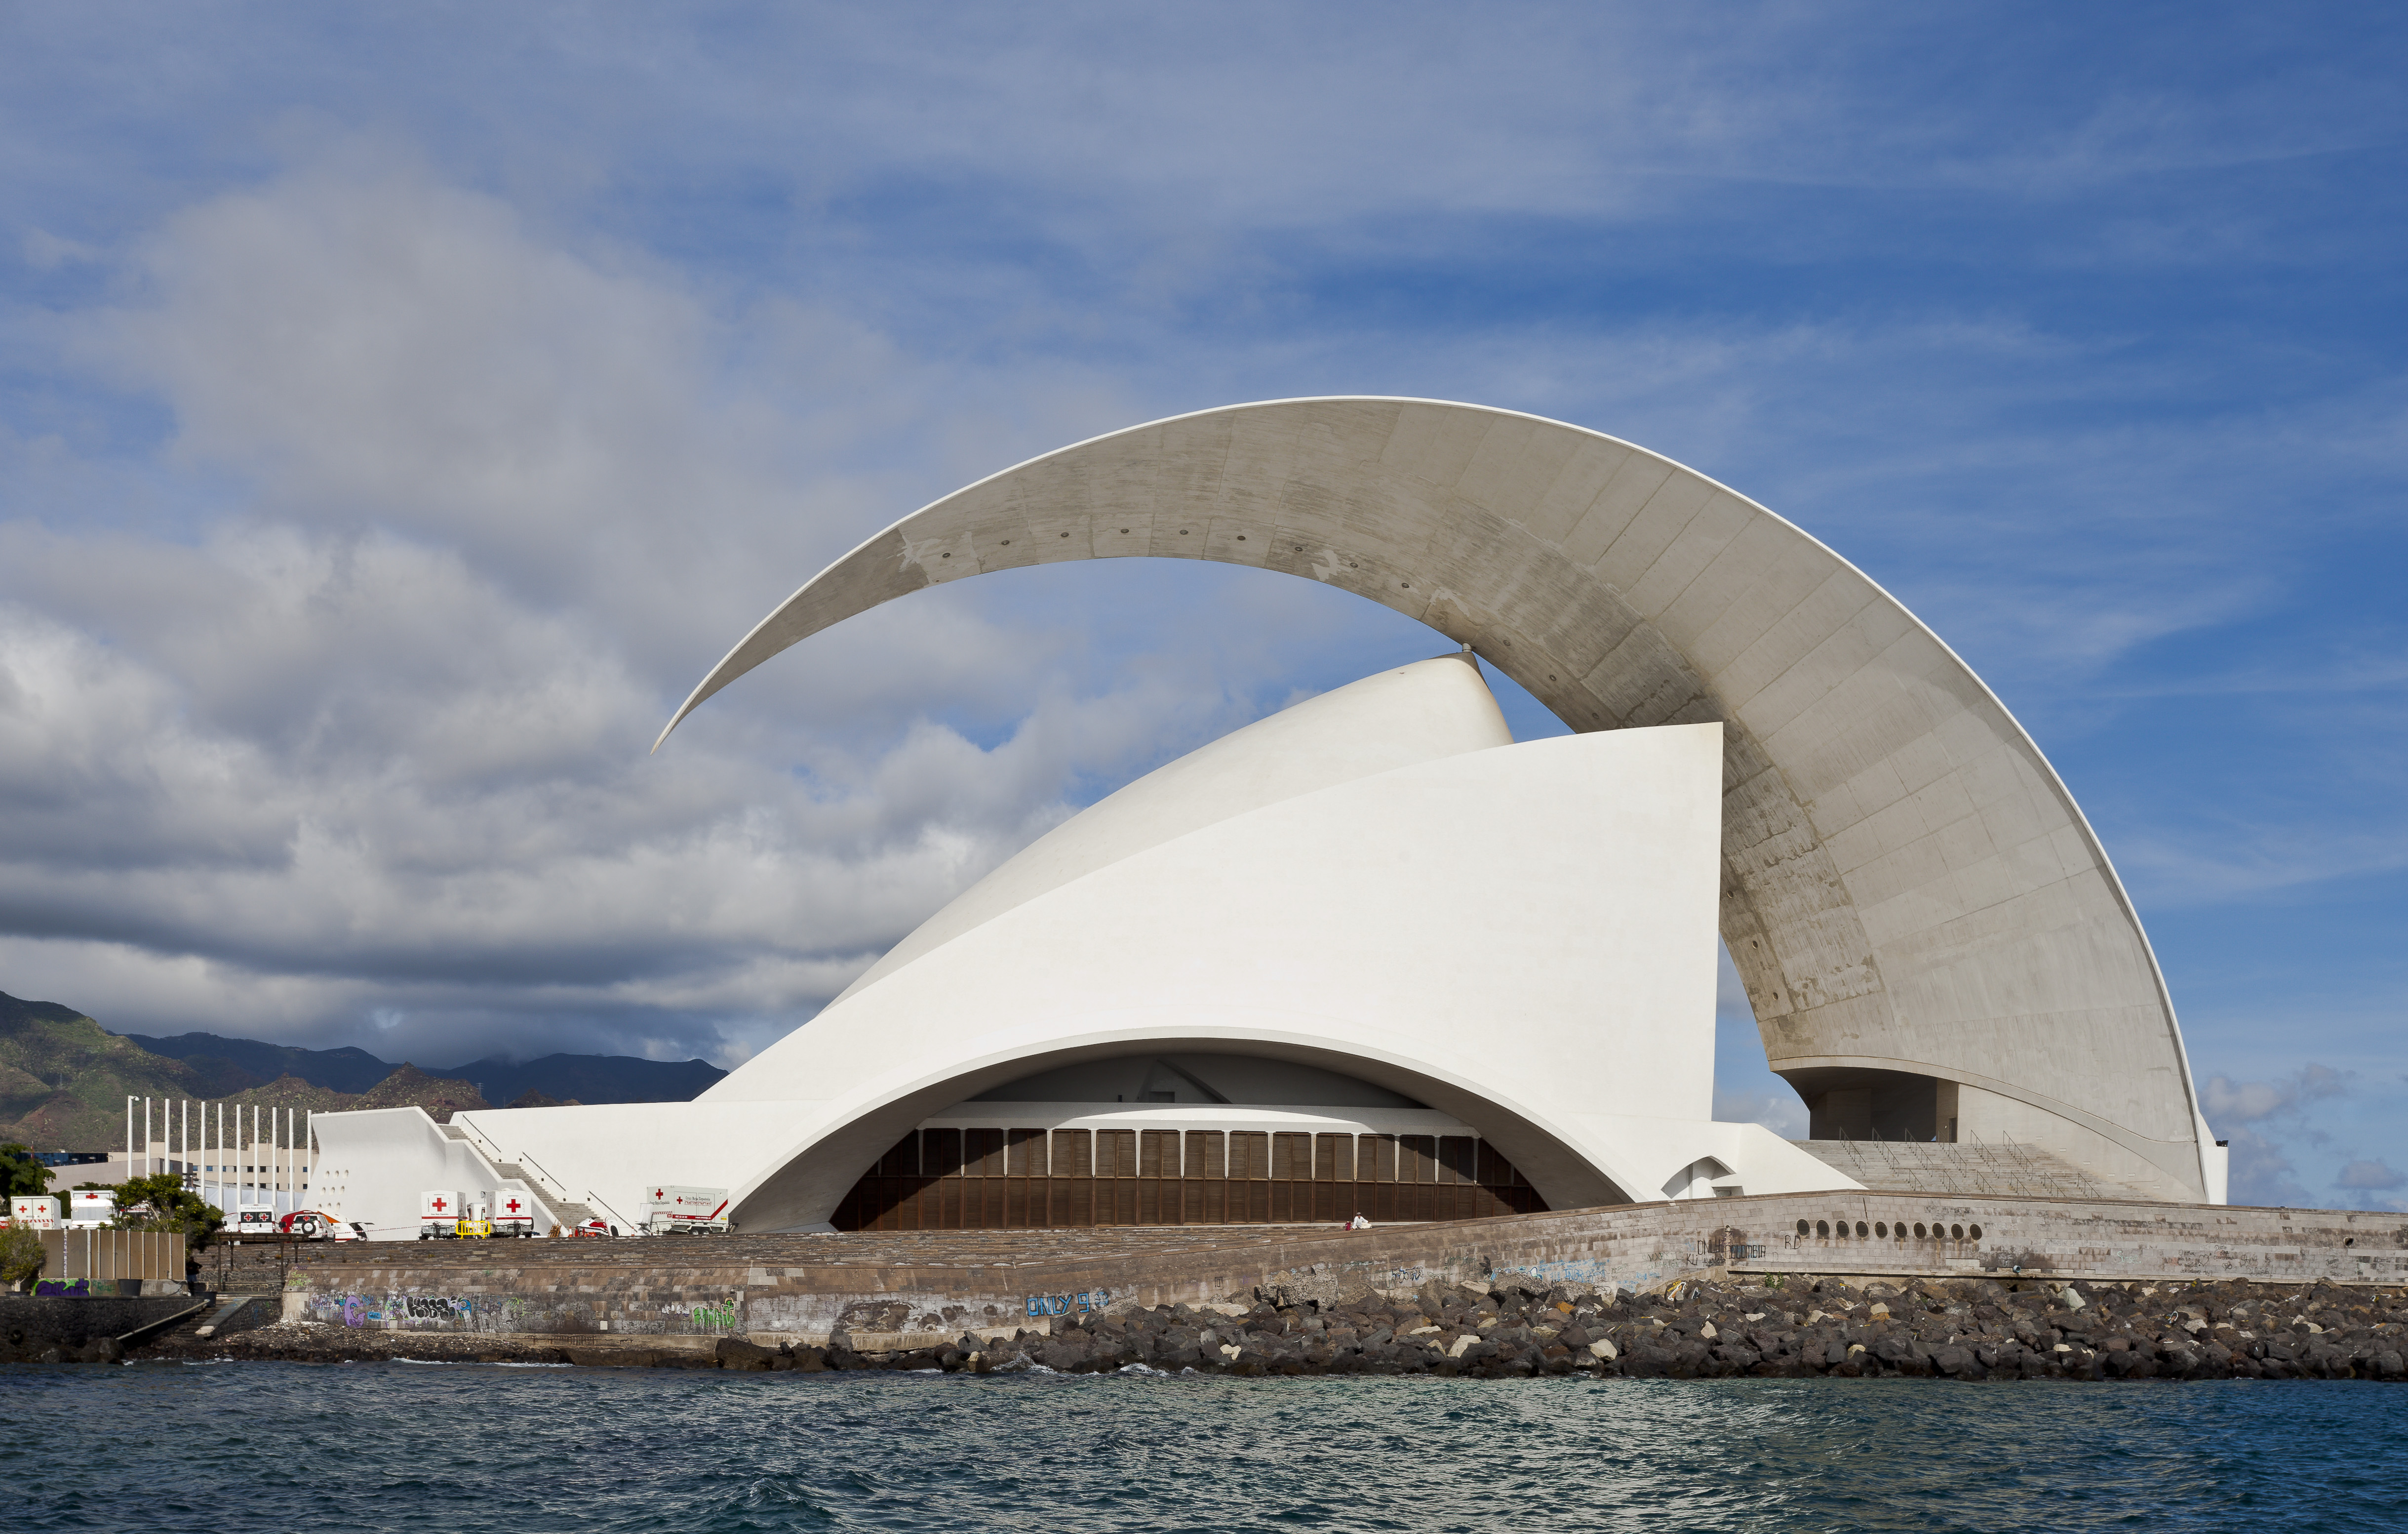 Tenerife Spain  city photos : Auditorio de Tenerife, Santa Cruz de Tenerife, España, 2012 12 ...